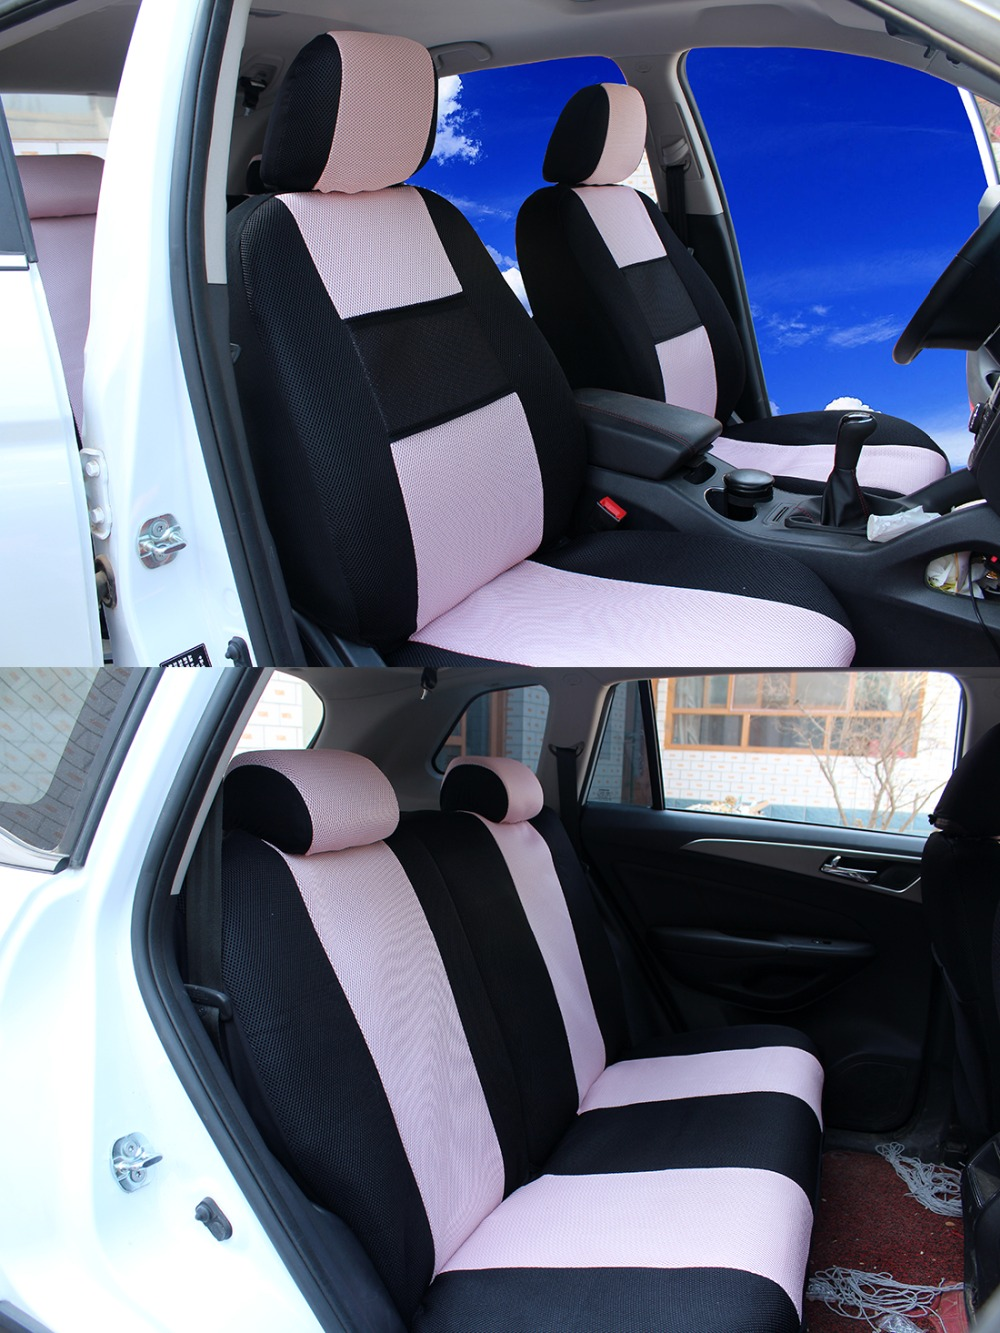 2 front seats universal car seat covers for toyota corolla camry rav4 vitz auris prius yaris. Black Bedroom Furniture Sets. Home Design Ideas